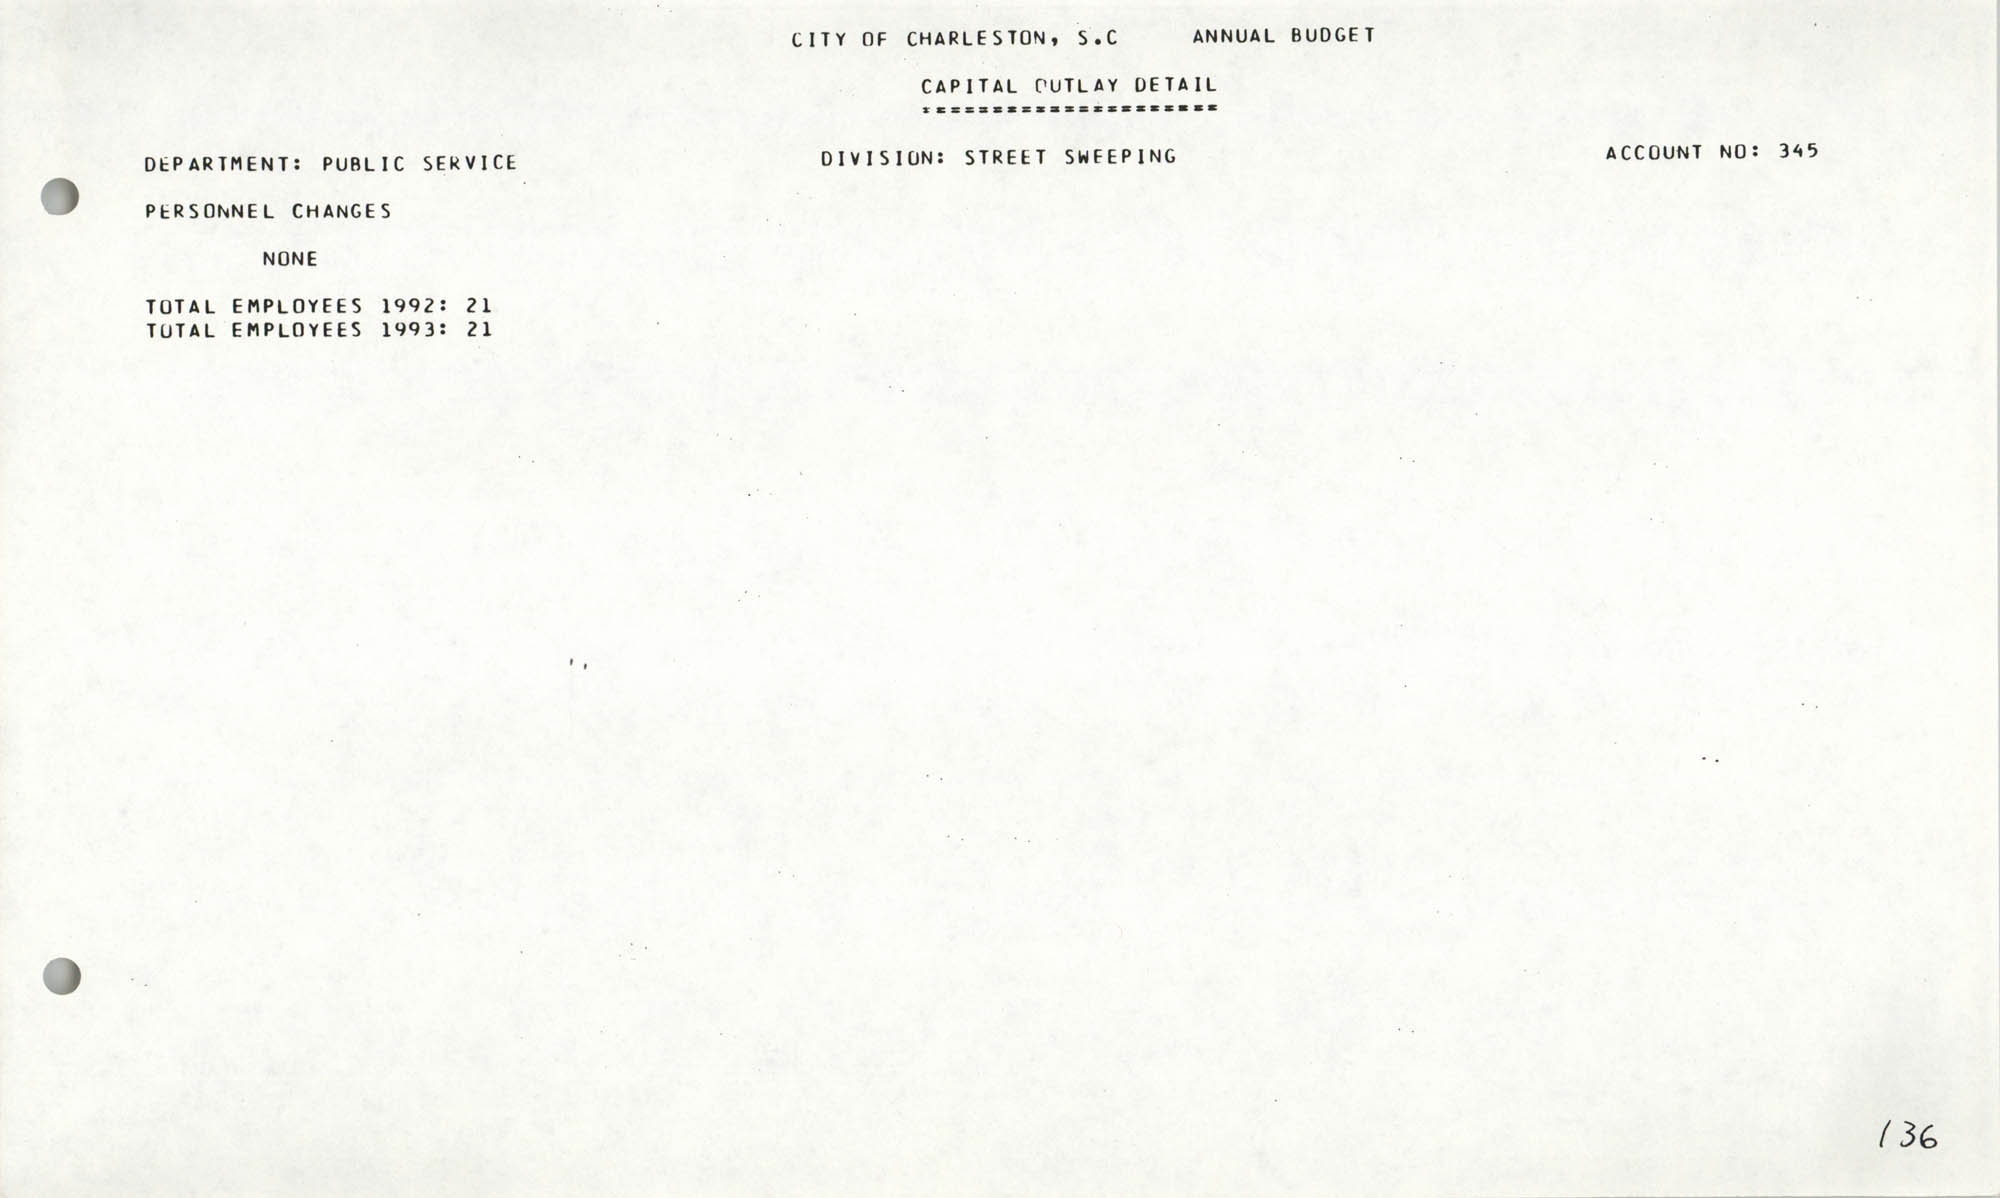 The City Council of Charleston, South Carolina, 1993 Budget, Page 136